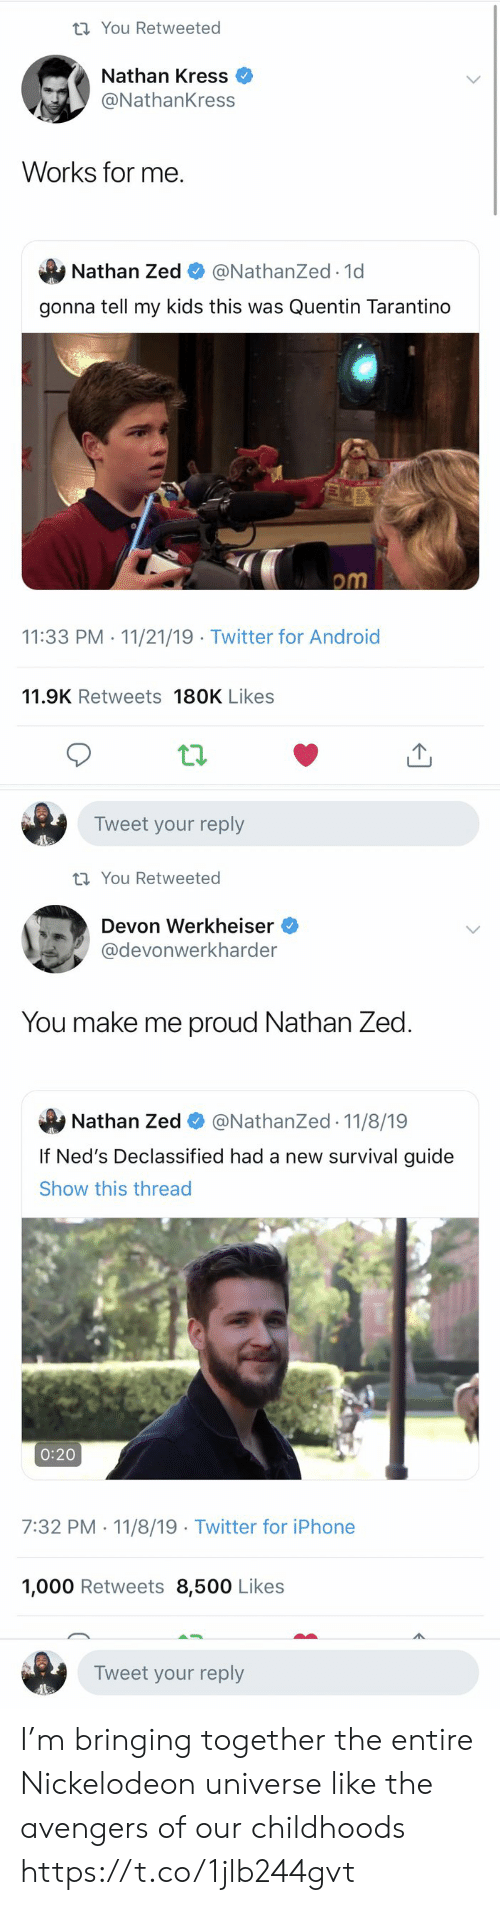 Nickelodeon: t You Retweeted  Nathan Kress  @NathanKress  Works for me  Nathan Zed  @NathanZed.1d  gonna tell my kids this was Quentin Tarantino  om  11:33 PM 11/21/19 Twitter for Android  .  11.9K Retweets 180K Likes  Tweet your reply   t You Retweeted  Devon Werkheiser  @devonwerkharder  You make me proud Nathan Zed  @NathanZed 11/8/19  Nathan Zed  If Ned's Declassified had a new survival guide  Show this thread  0:20  7:32 PM 11/8/19 Twitter for iPhone  1,000 Retweets 8,500 Likes  Tweet your reply I'm bringing together the entire Nickelodeon universe like the avengers of our childhoods https://t.co/1jlb244gvt